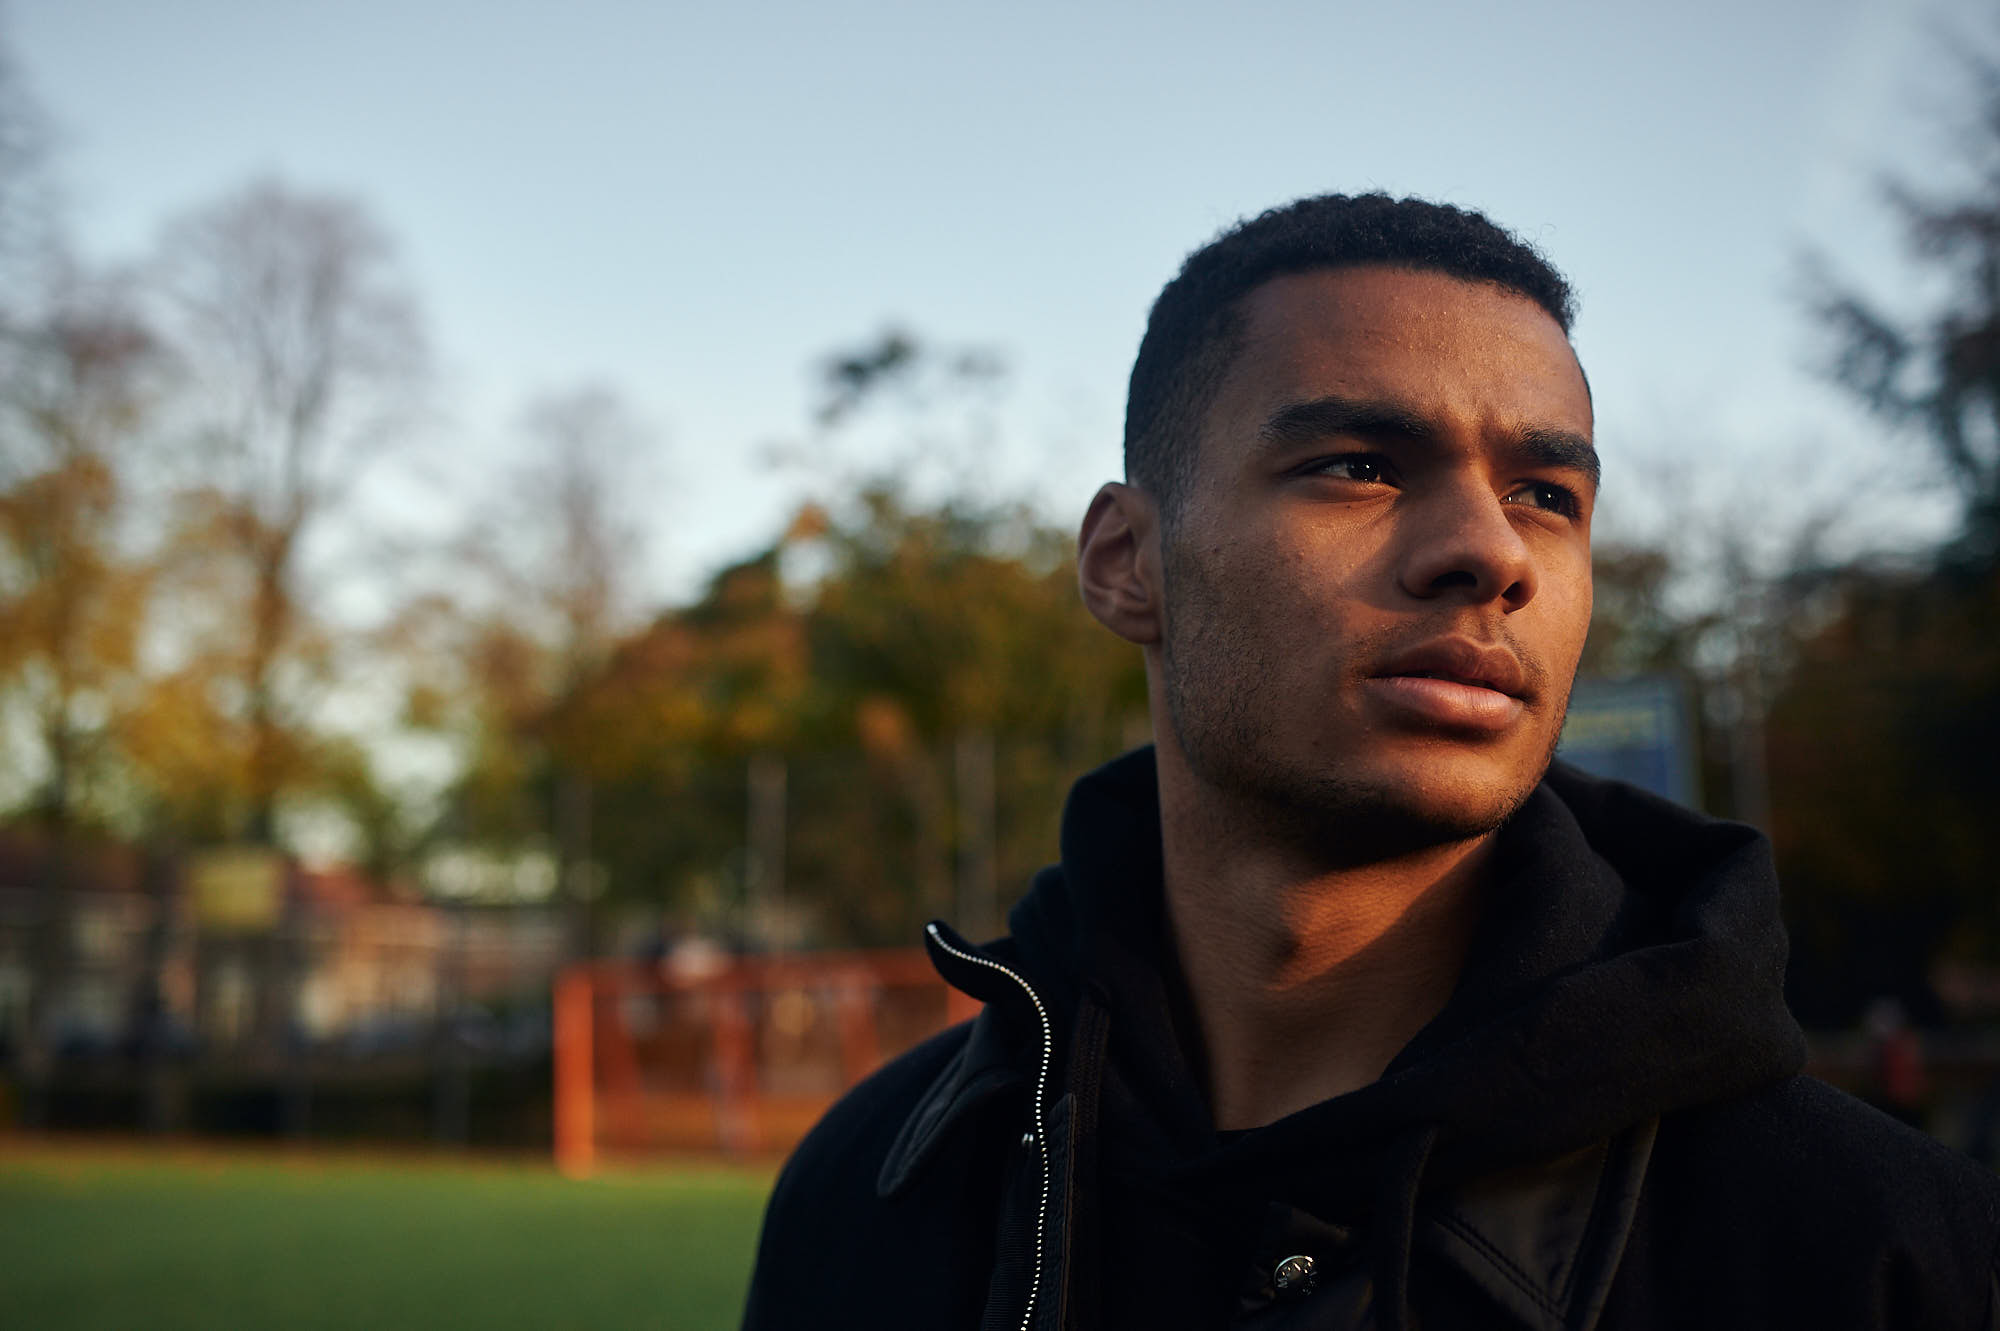 Intimate portrait of PSV Eindhoven football player Cody Gakpo